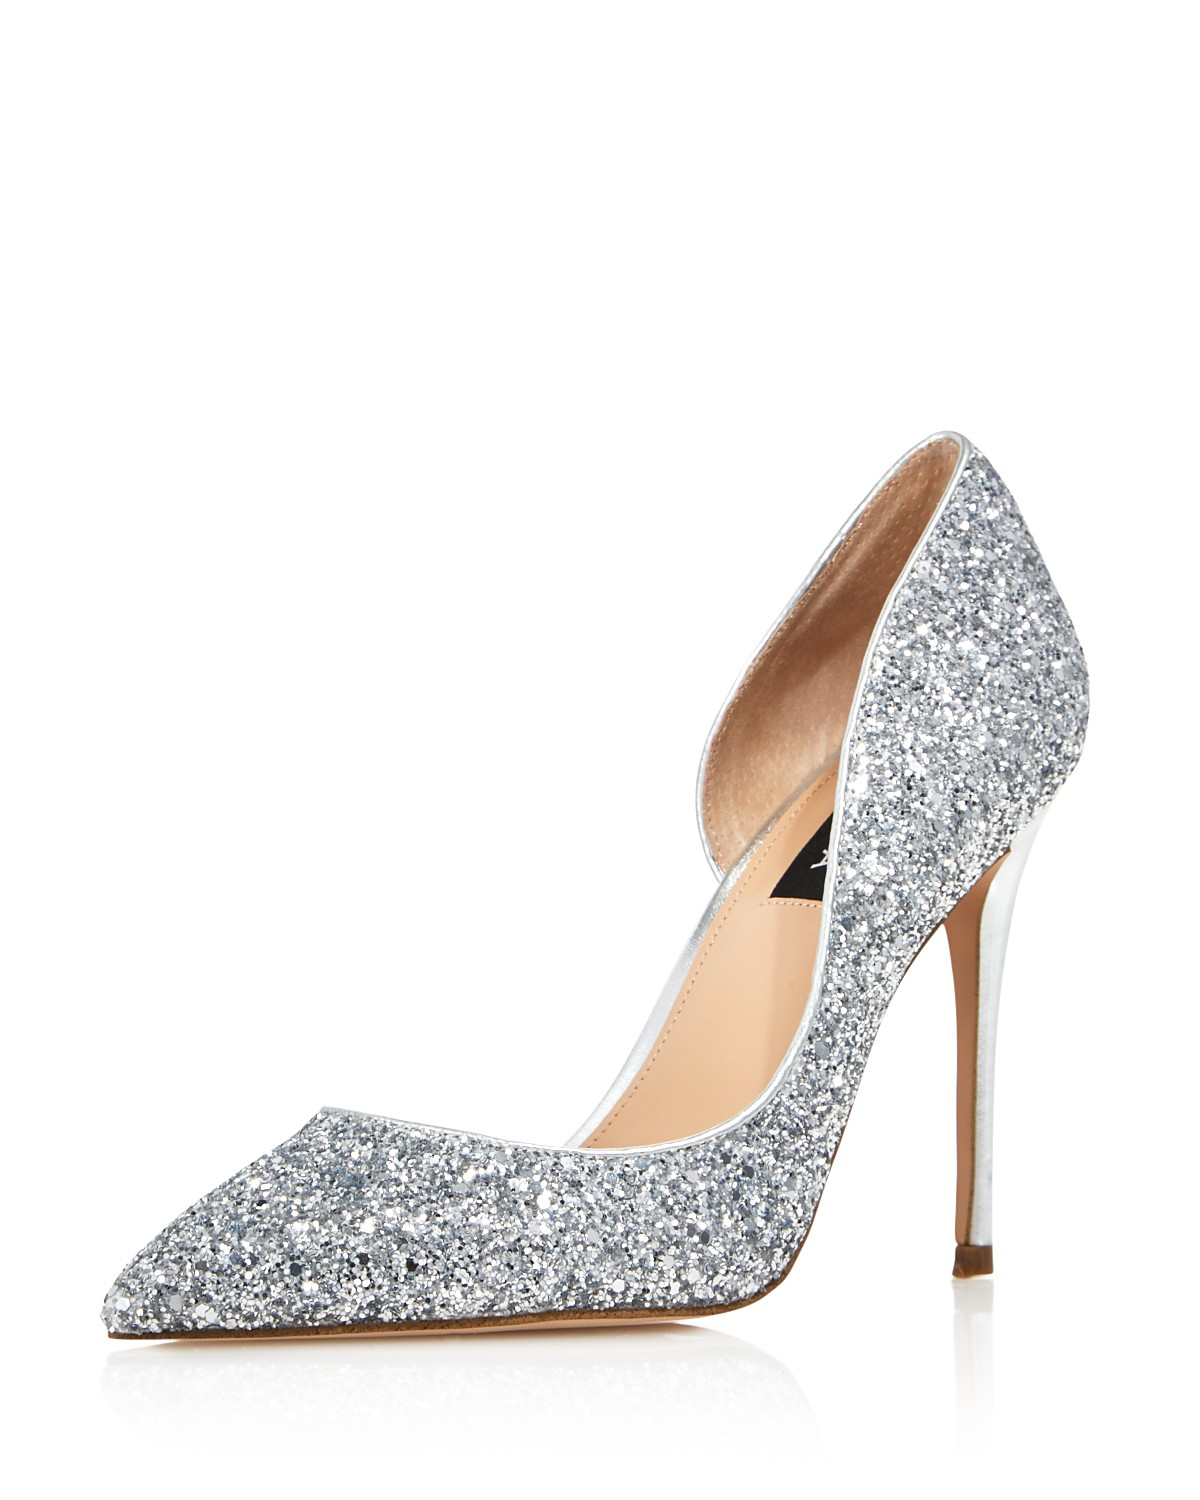 Aqua Women's Dion Glitter Embellished High-Heel d'Orsay Pumps - 100% Exclusive E3a7eSDz